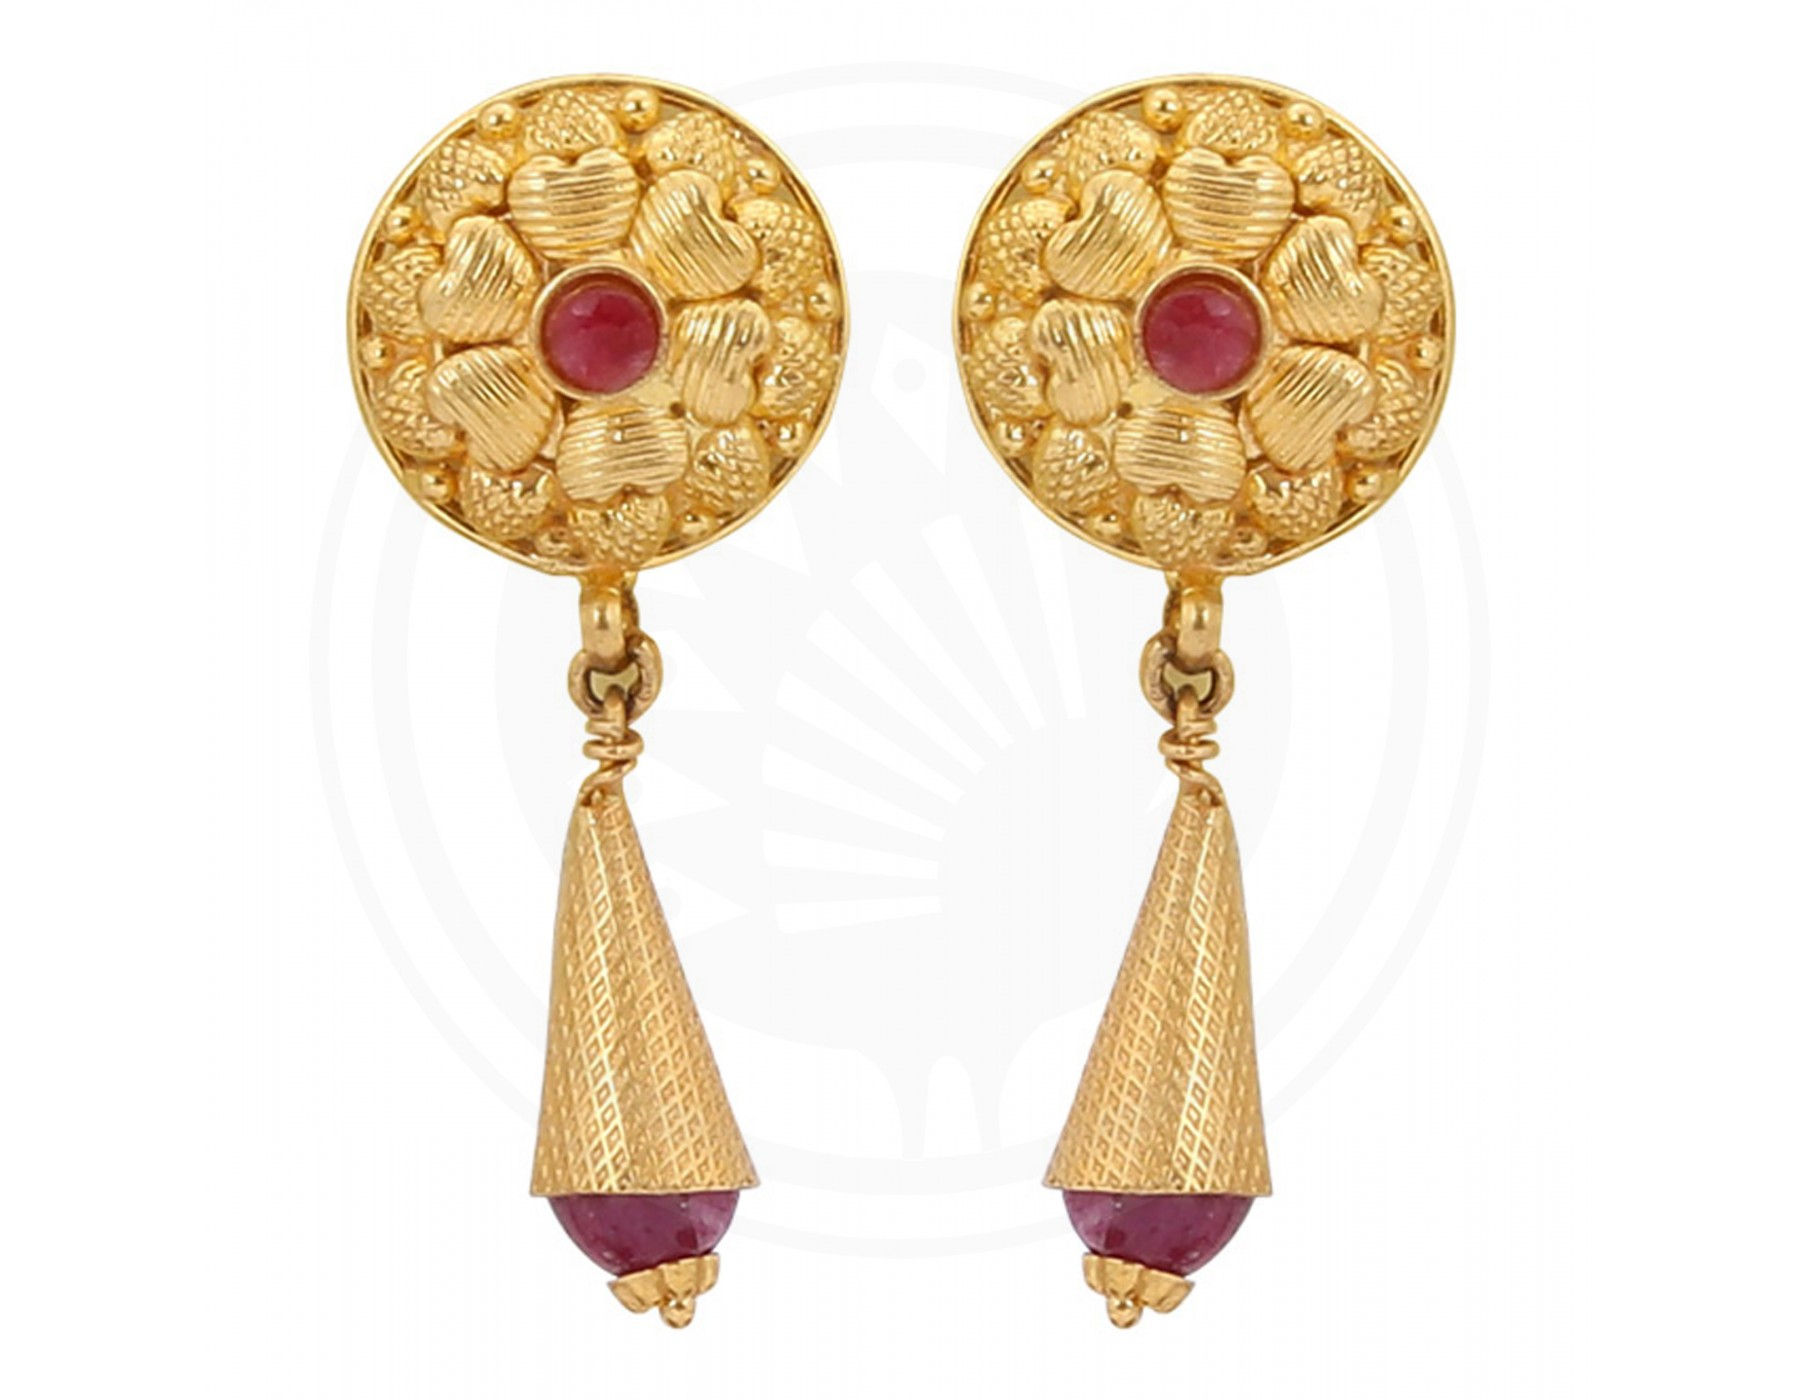 watches brand beauty goldshine find at back stud and gold hallmarked online earrings dangler fine screw jewelry products